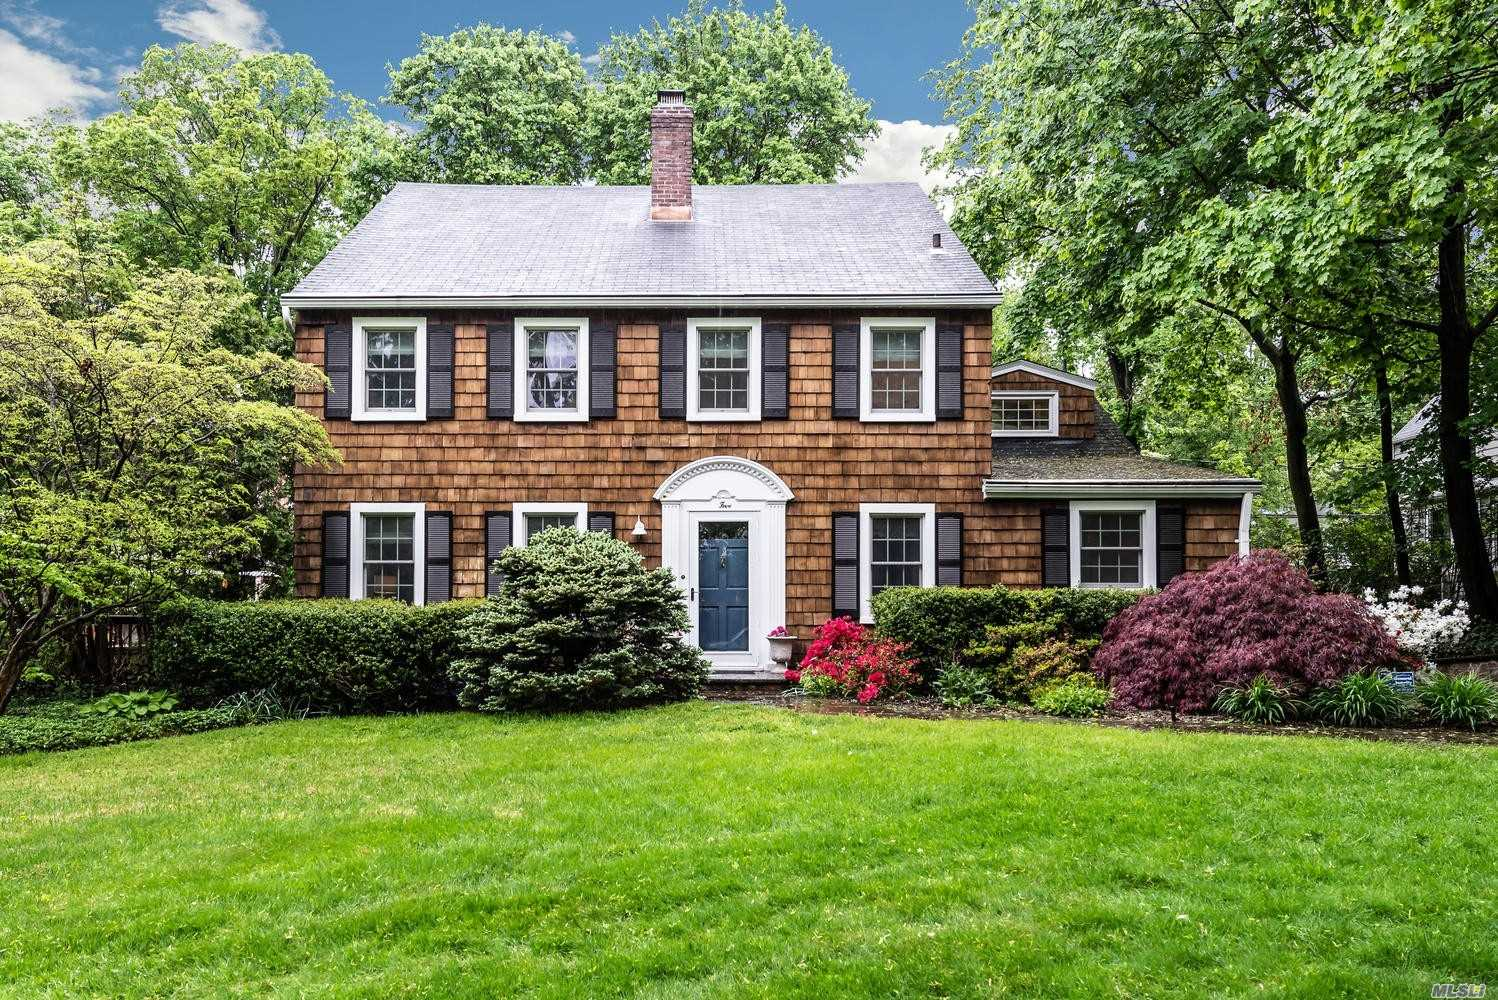 Completely Renovated Beacon Hill Beauty On Lush .24 Acres Close To Town & Train! No Stone Left Unturned In This 3+BR/3Full /2 Half Bath Center Hall Colonial. Gather In Over-sized Custom Chef's Eat-In Kitchen With Quartz Counters, High-End Appliances & Radiant Heat. Living Rm w/Stunning Mill-work, Wood Burning Fireplace, French Doors Leading To Formal Dining Rm & Den/Office.Large Deck .Walk Out Lower Level Rec Rm w/Fireplace. 3rd Fl Walk-up. Quality Throughout! Beach/mooring/tennis w/membership&fee